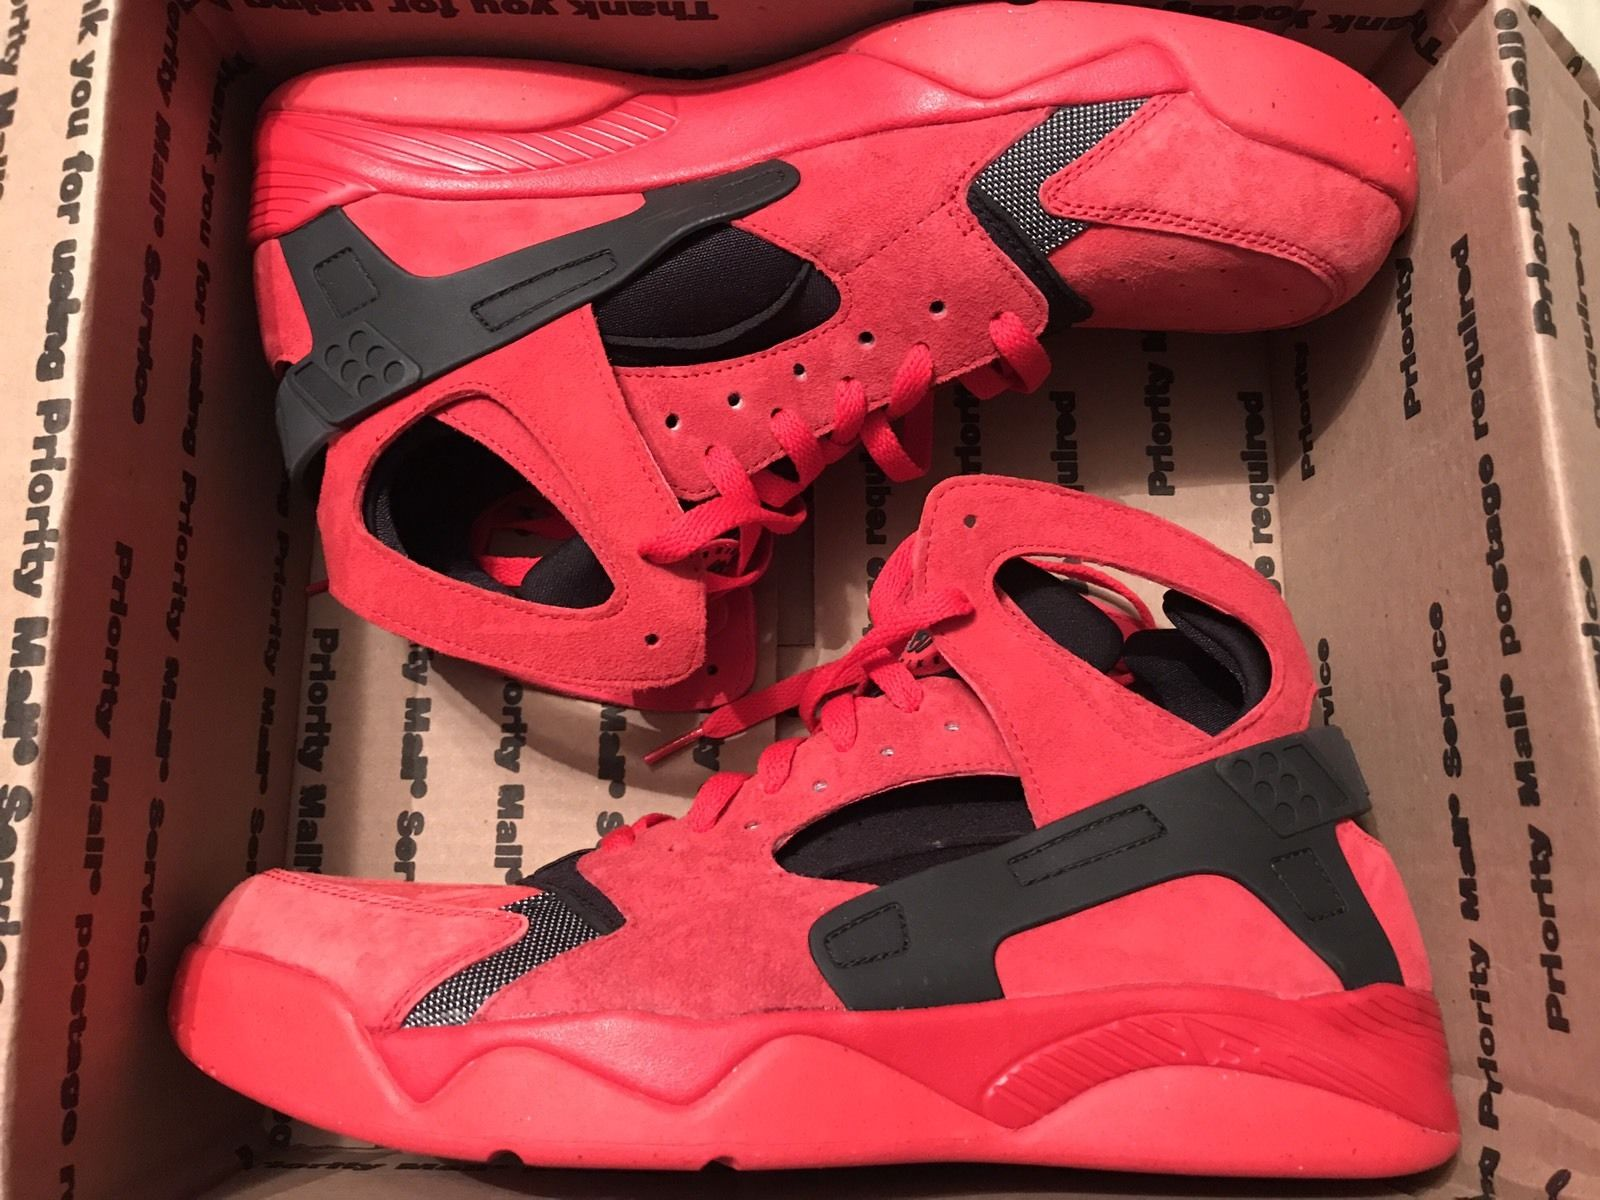 Image of Nike Air Flight Huarache - Red Love Hate - Size 13 - Red Suede - New